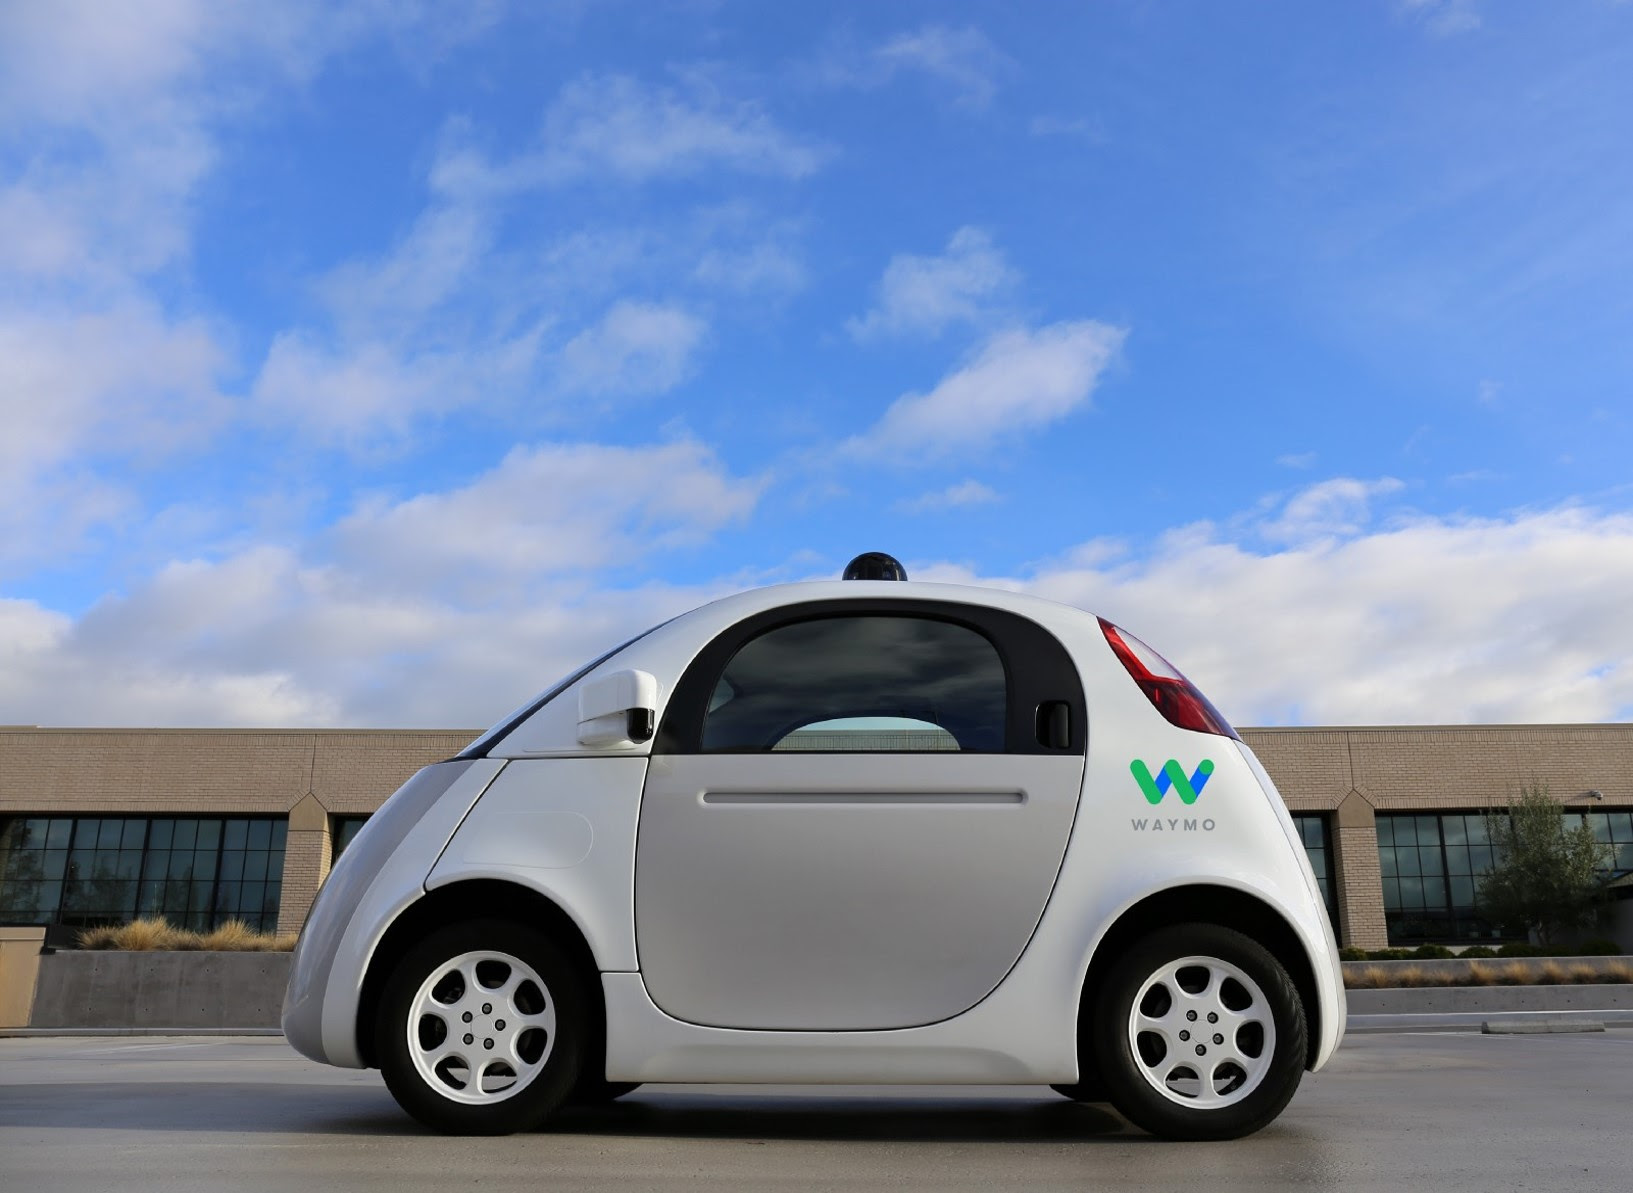 Waymo - Artificial Intelligence Applications - Edureka